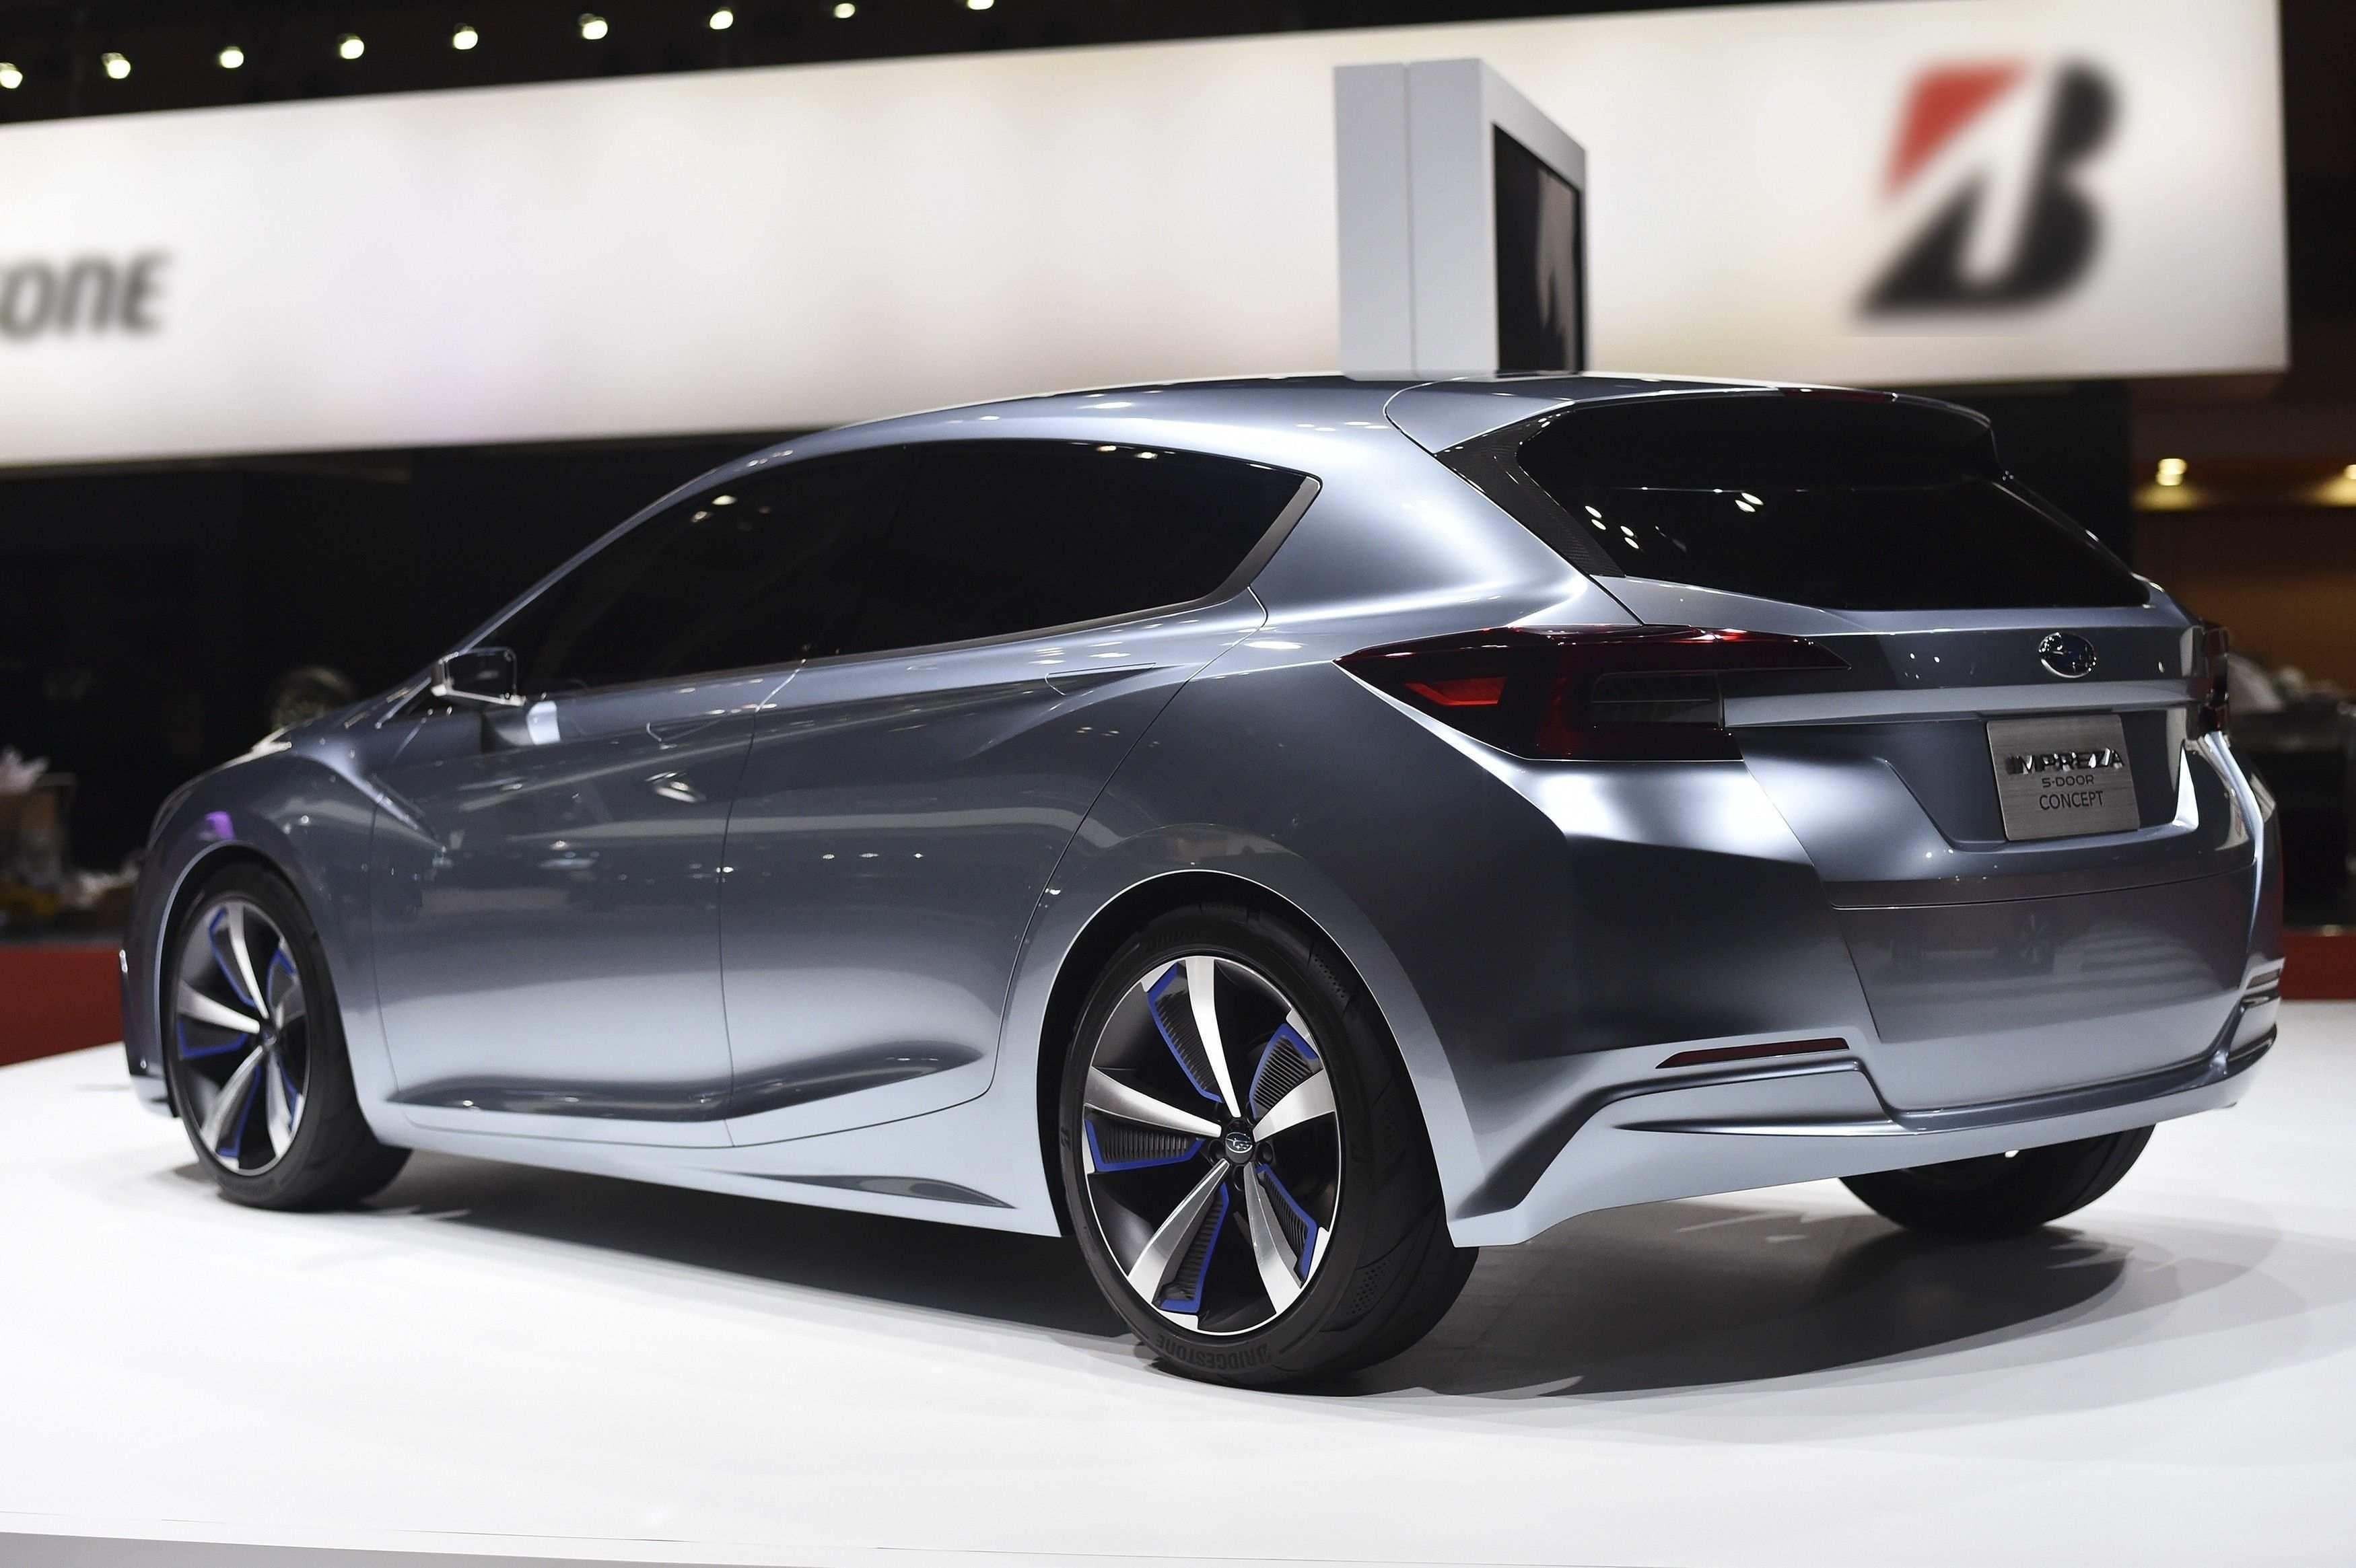 60 The Best Yeni Opel Astra 2020 New Concept